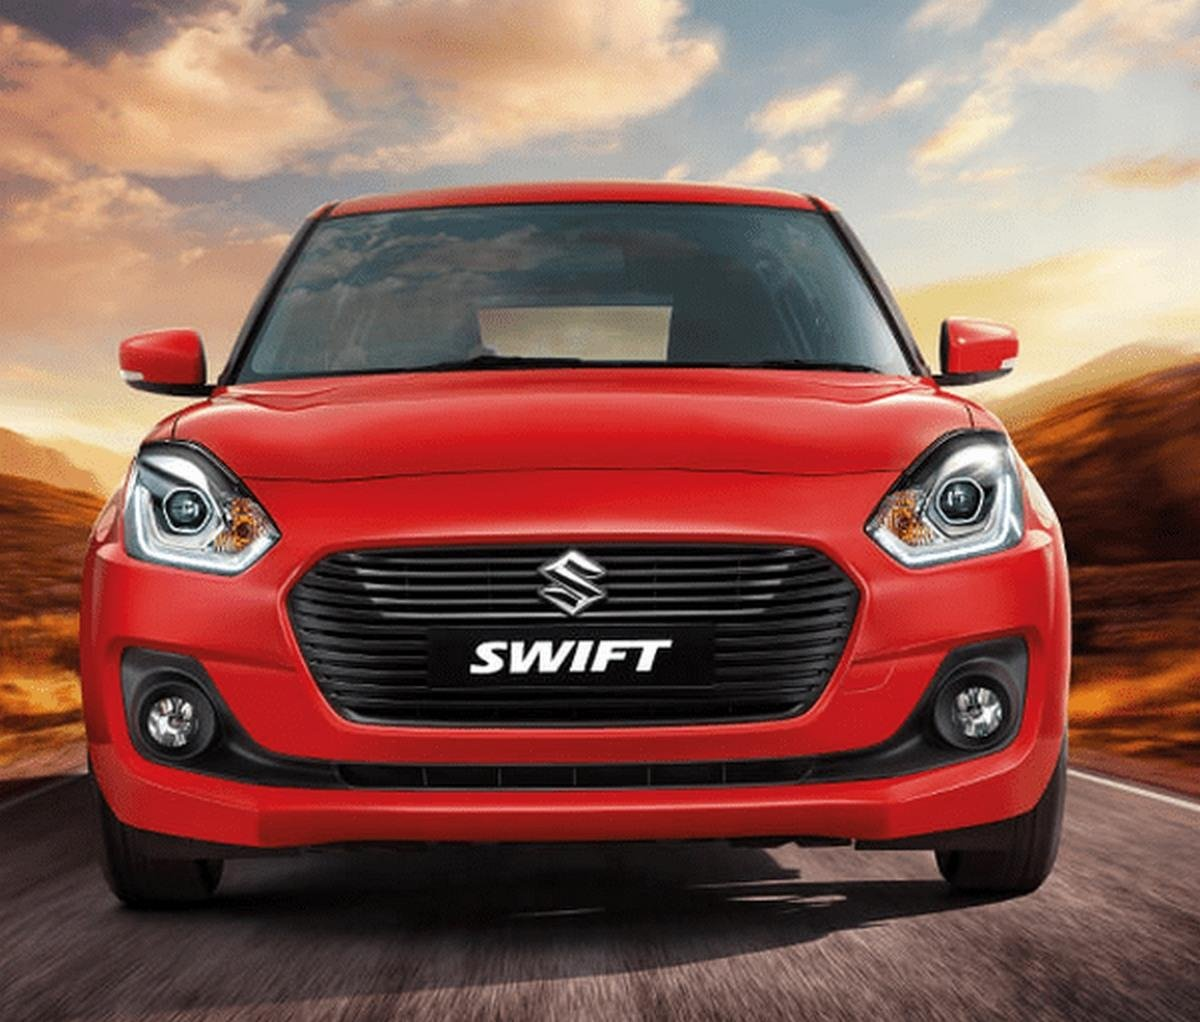 Maruti Swift red color front look